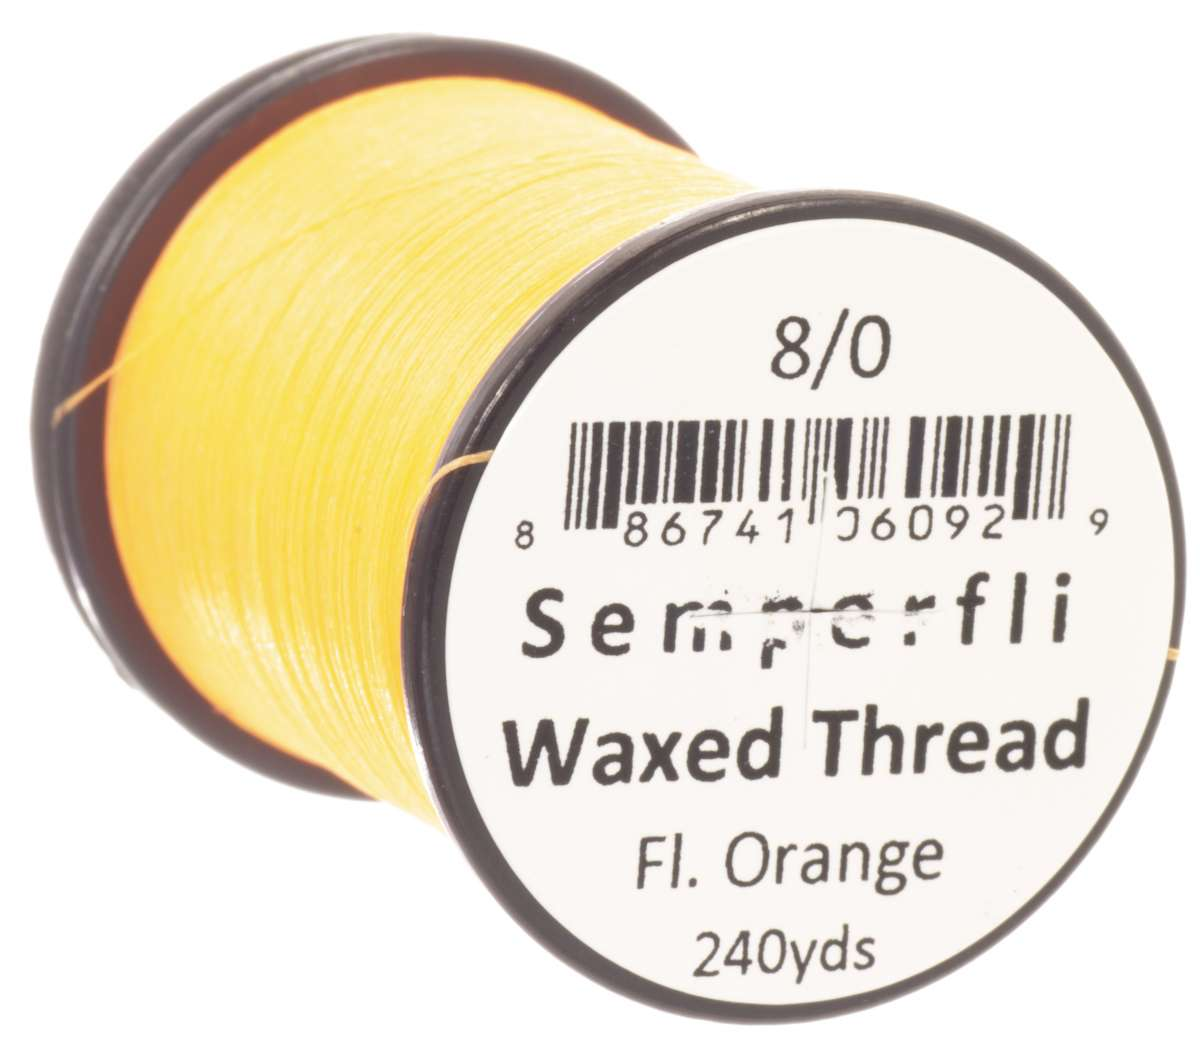 8/0 Classic Waxed Fluoro Orange Sem-0400-1871